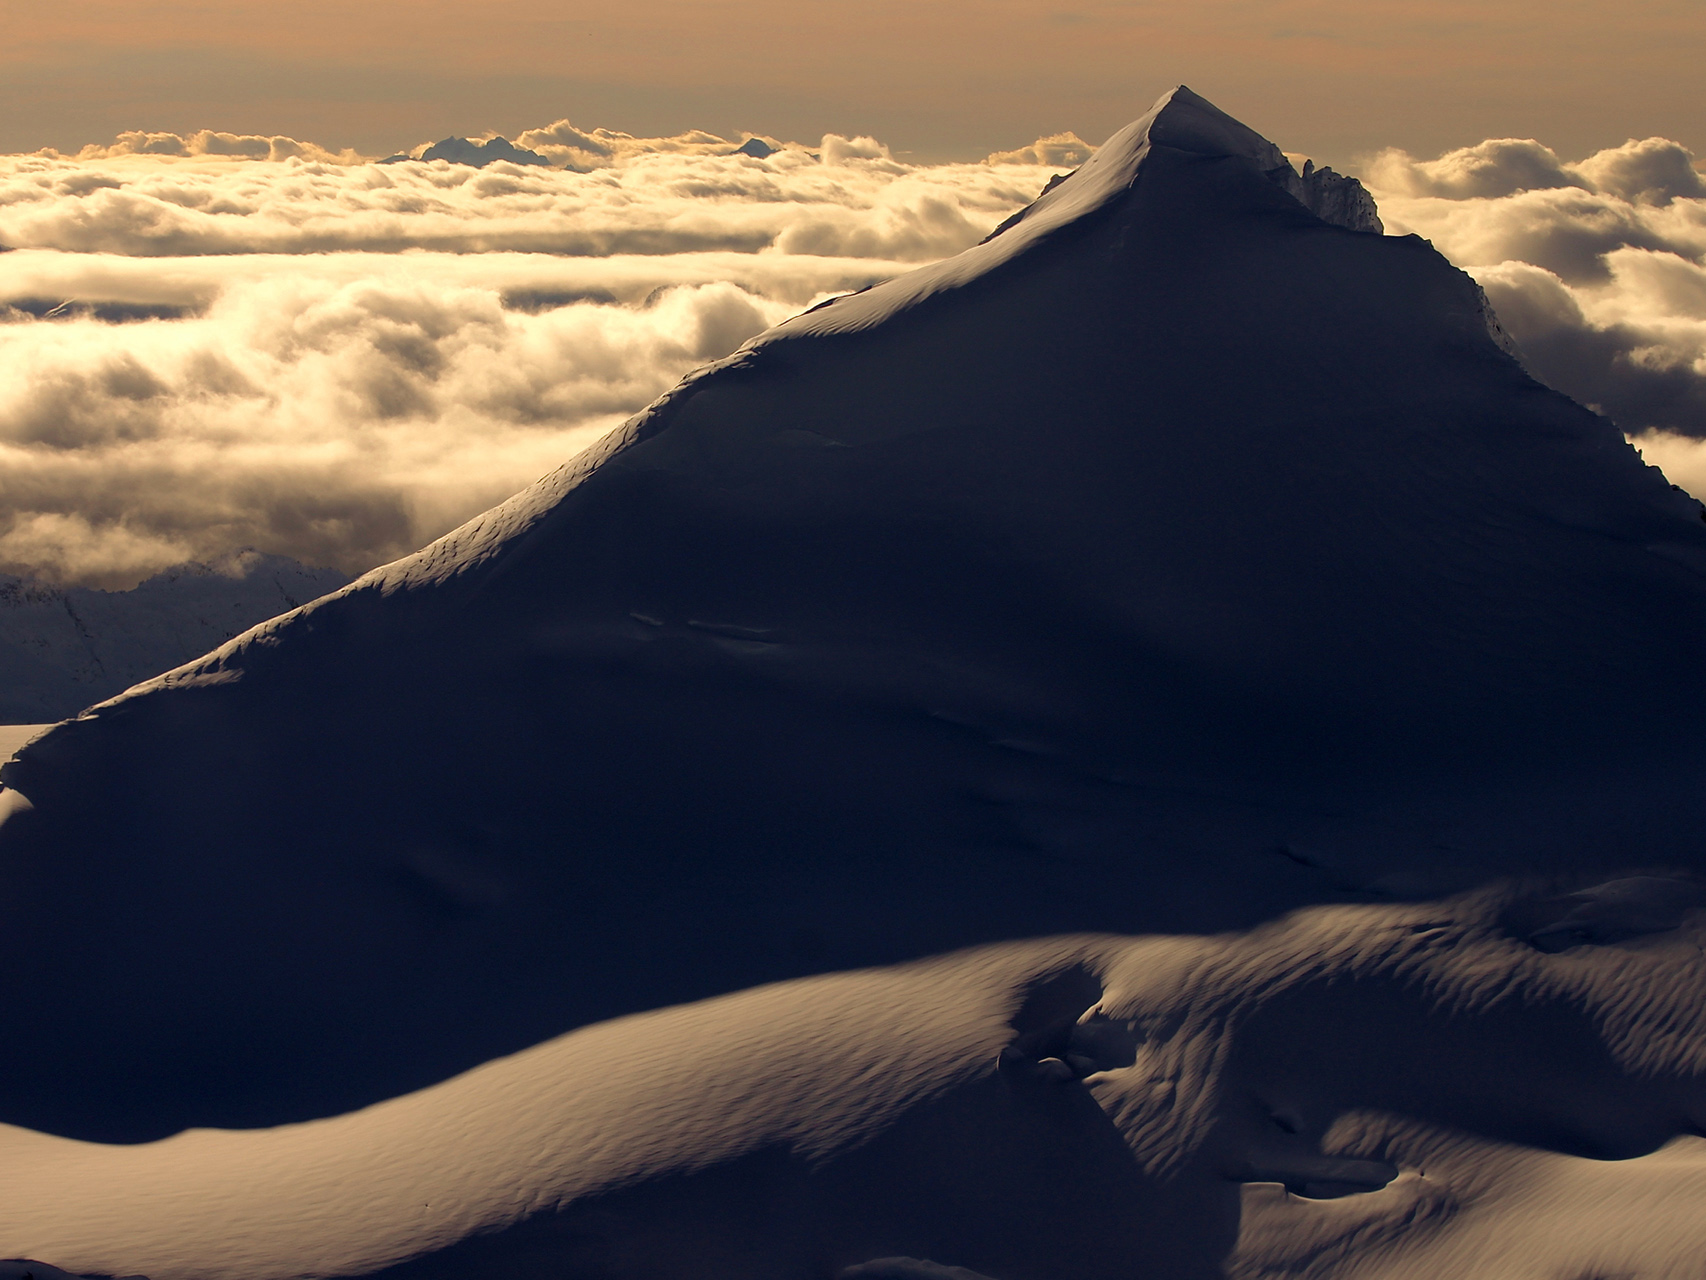 Aerial Photography and Mountain Shadows